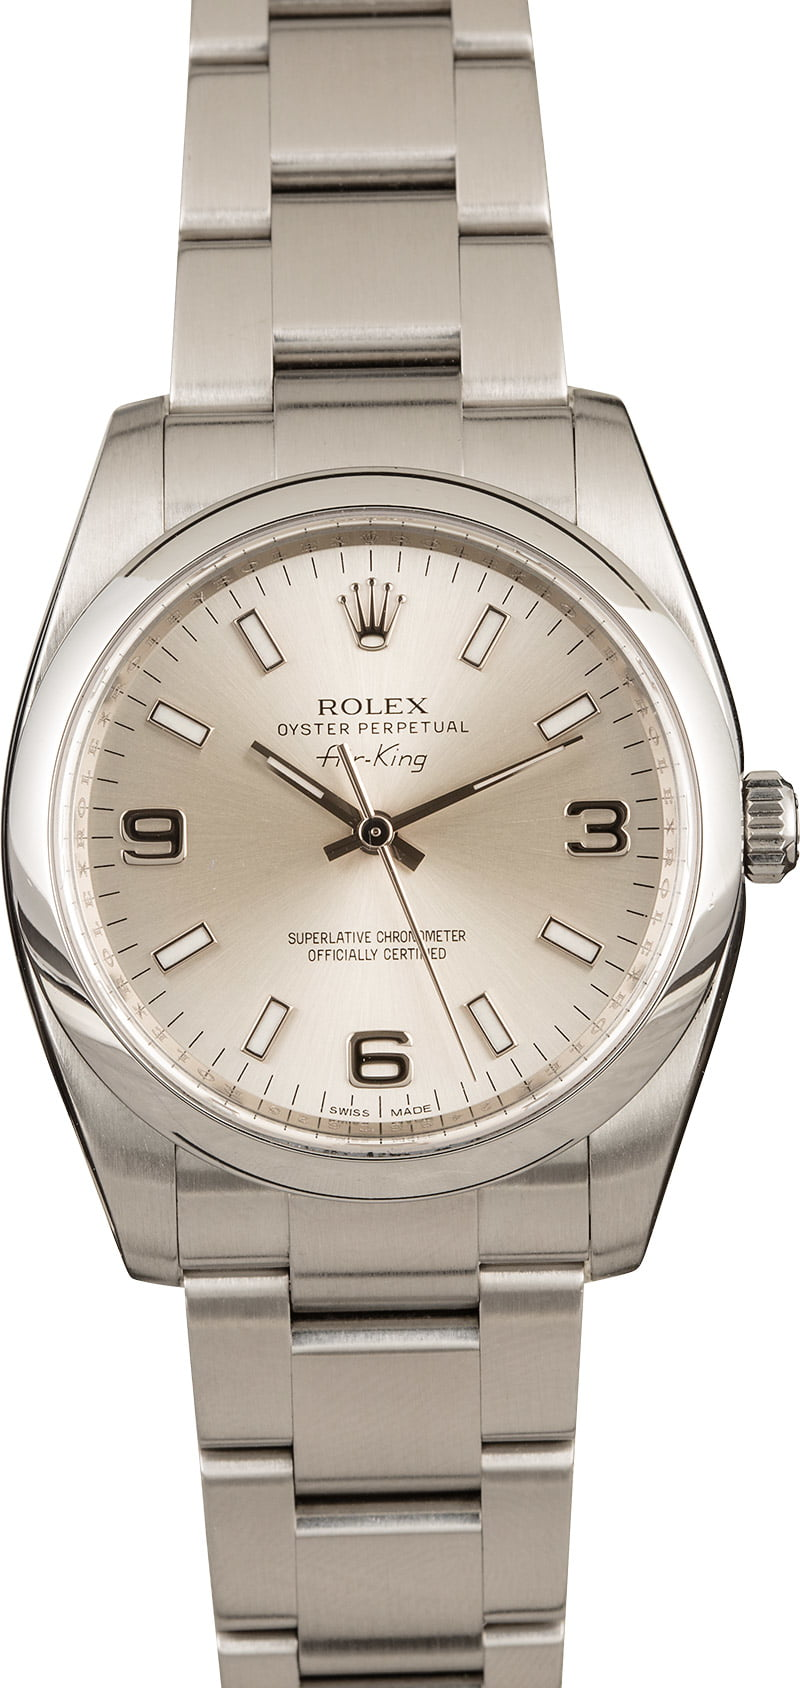 Rolex Air-King 34 vs 40 Comparison Guide 114200